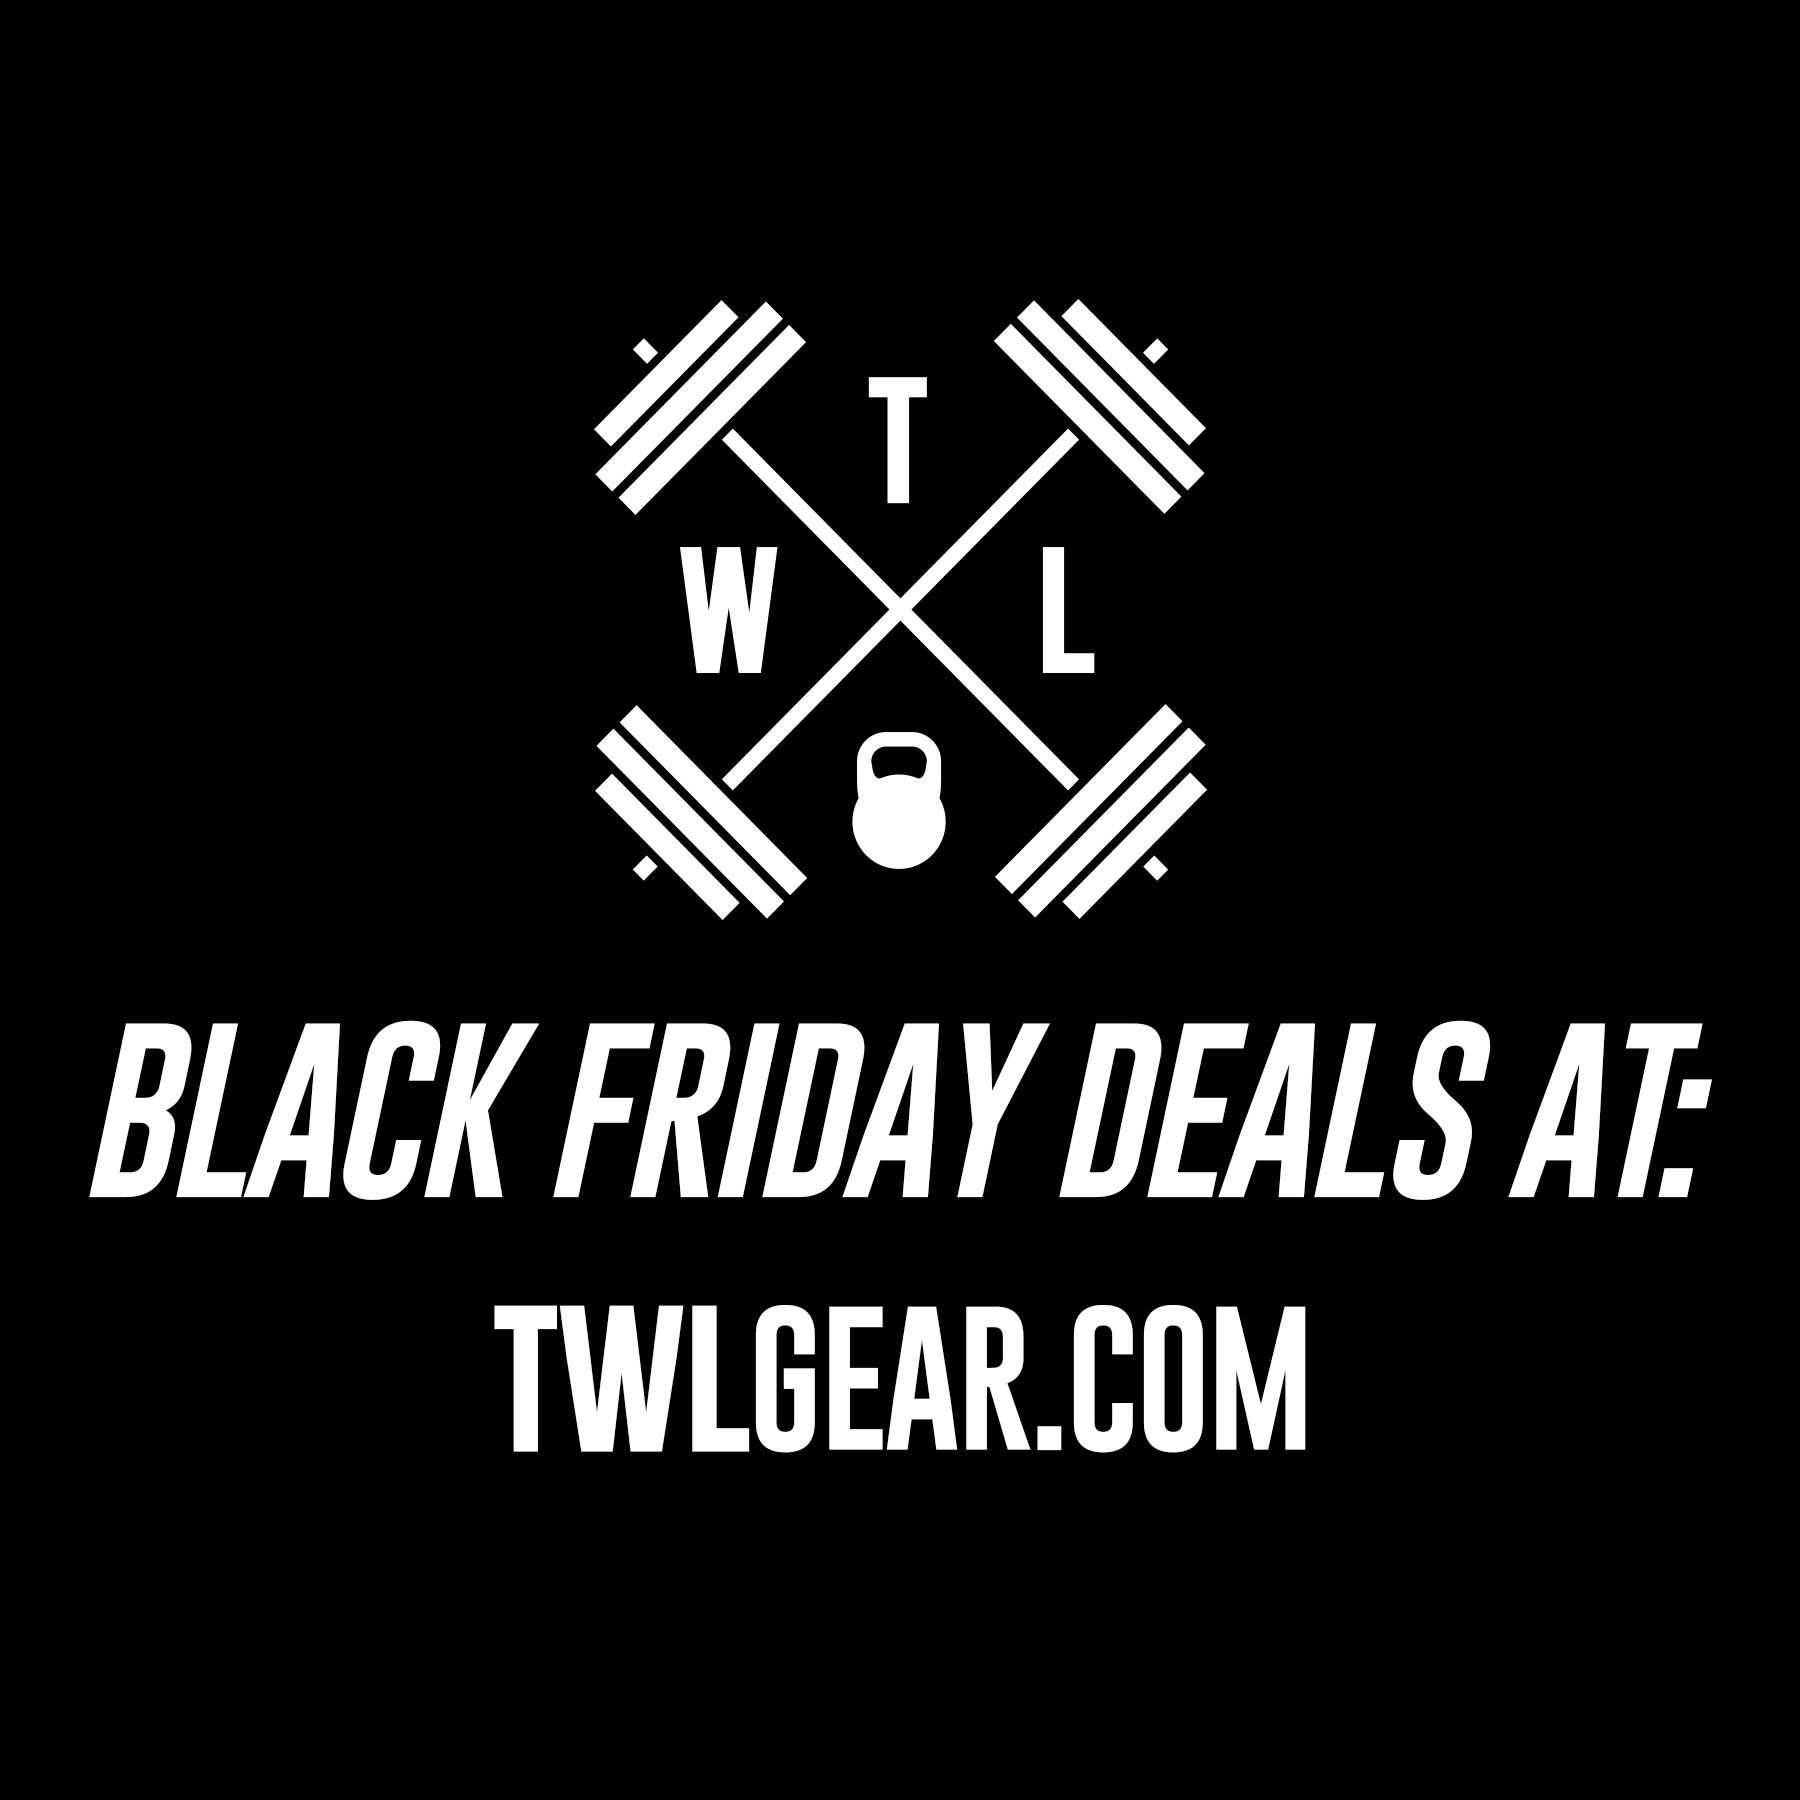 black-friday-deal-1_1800x1800